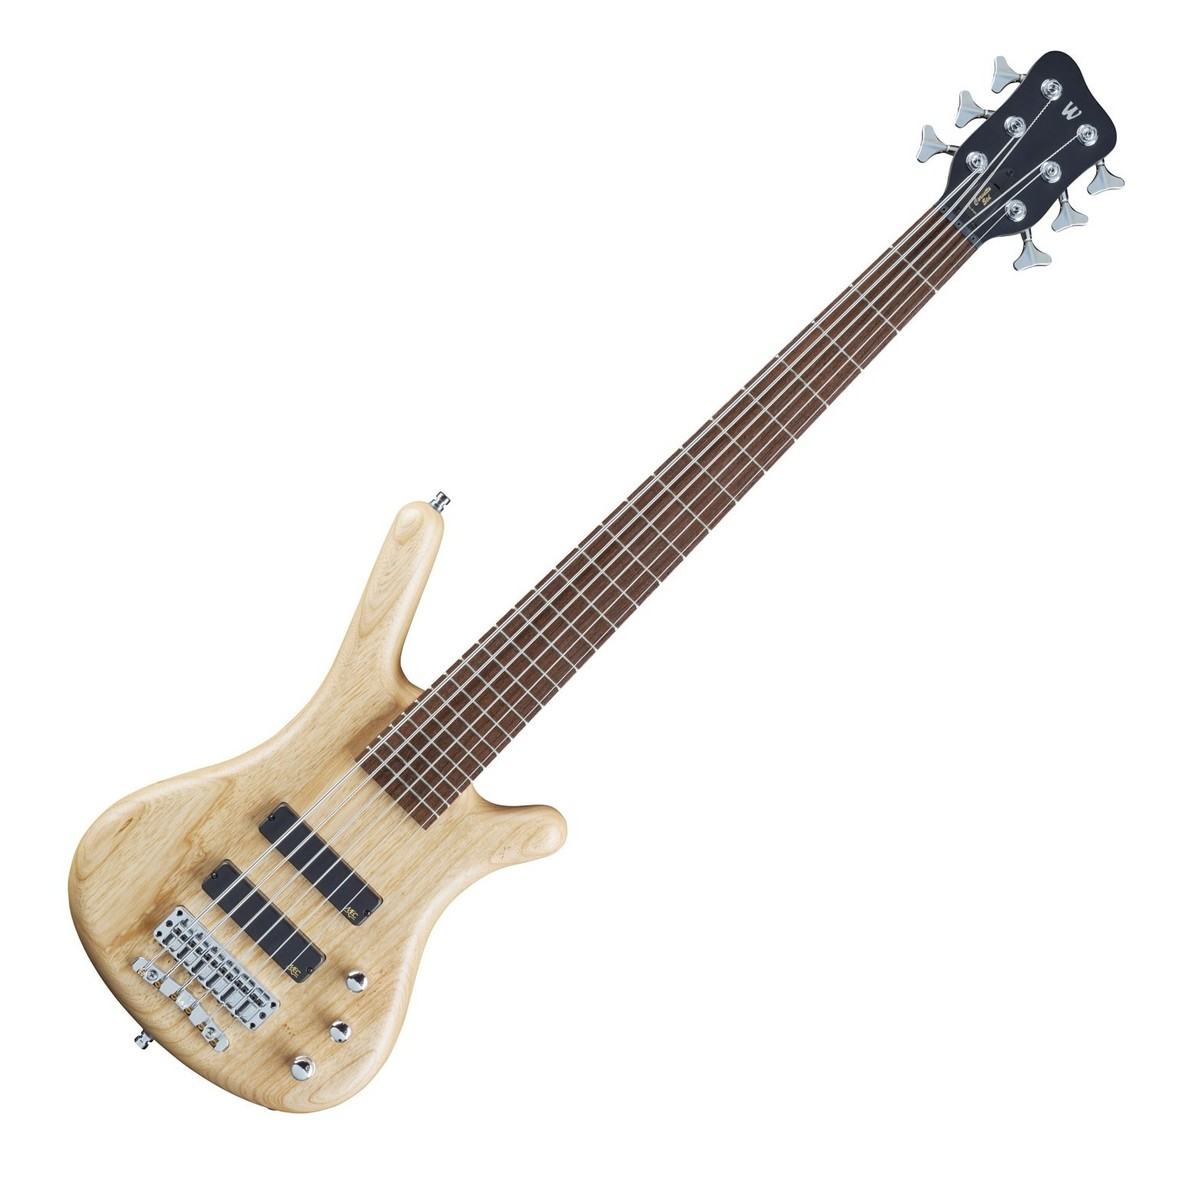 warwick gps corvette ash active 6 string bass natural satin at gear4music. Black Bedroom Furniture Sets. Home Design Ideas